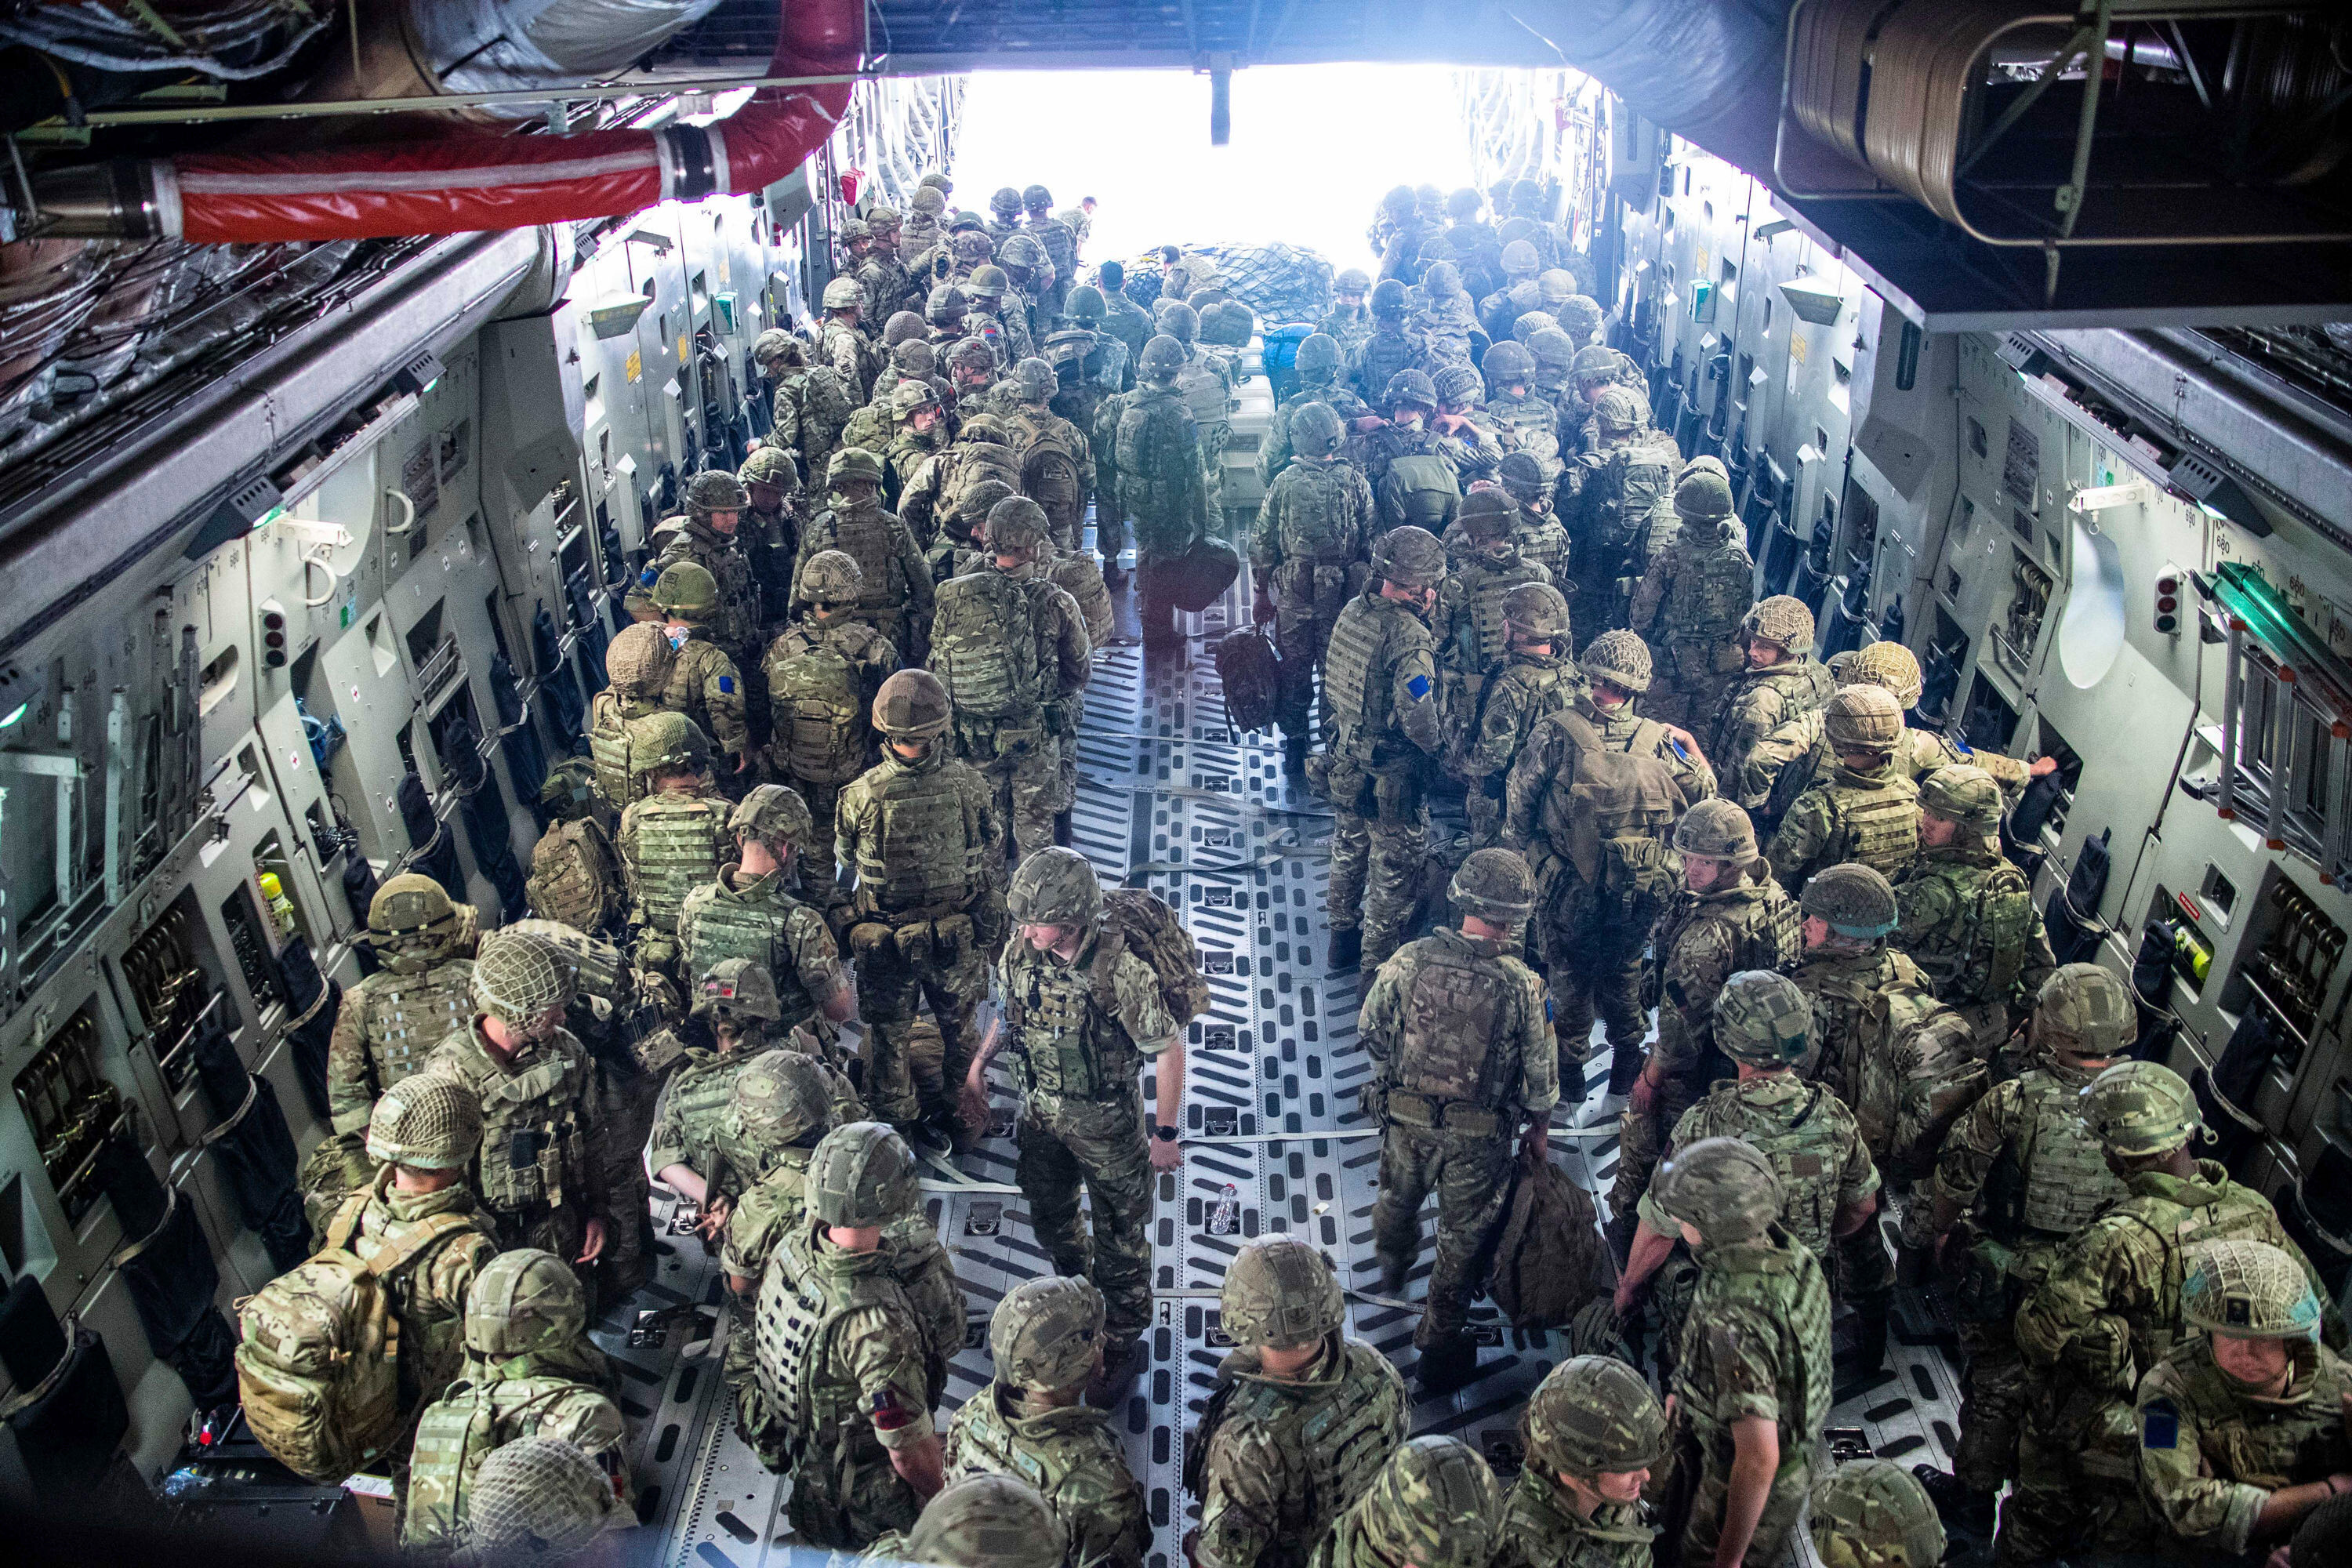 British soldiers arrive in Kabul to rescue British nationals in Afghanistan as the security situation worsens.